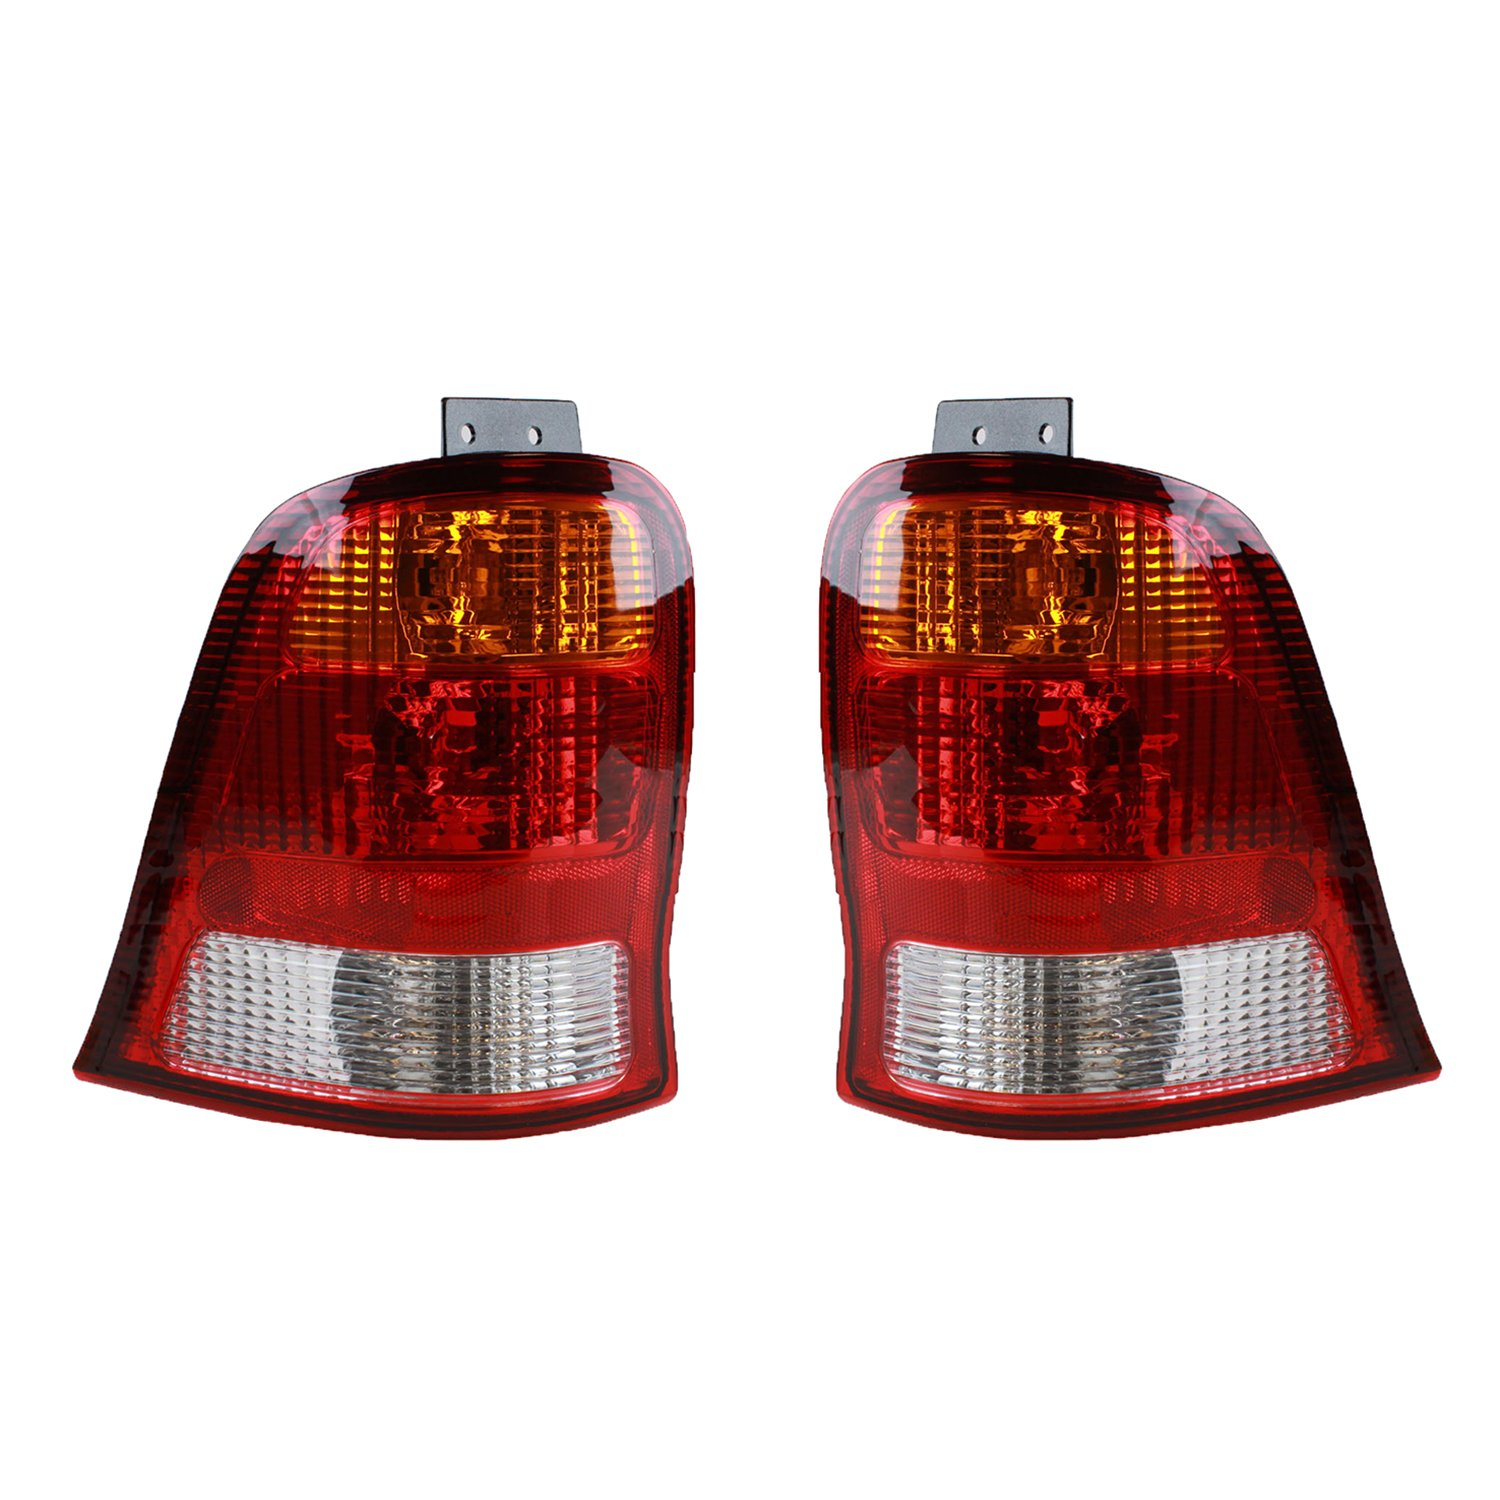 NEW TAIL LIGHT PAIR FITS FORD WINDSTAR FO2801127 3F2Z 13404 CA 3F2Z13404CA 3F2Z-13404-CA FO2800127 3F2Z 13405 CA 3F2Z13405CA 3F2Z-13405-CA